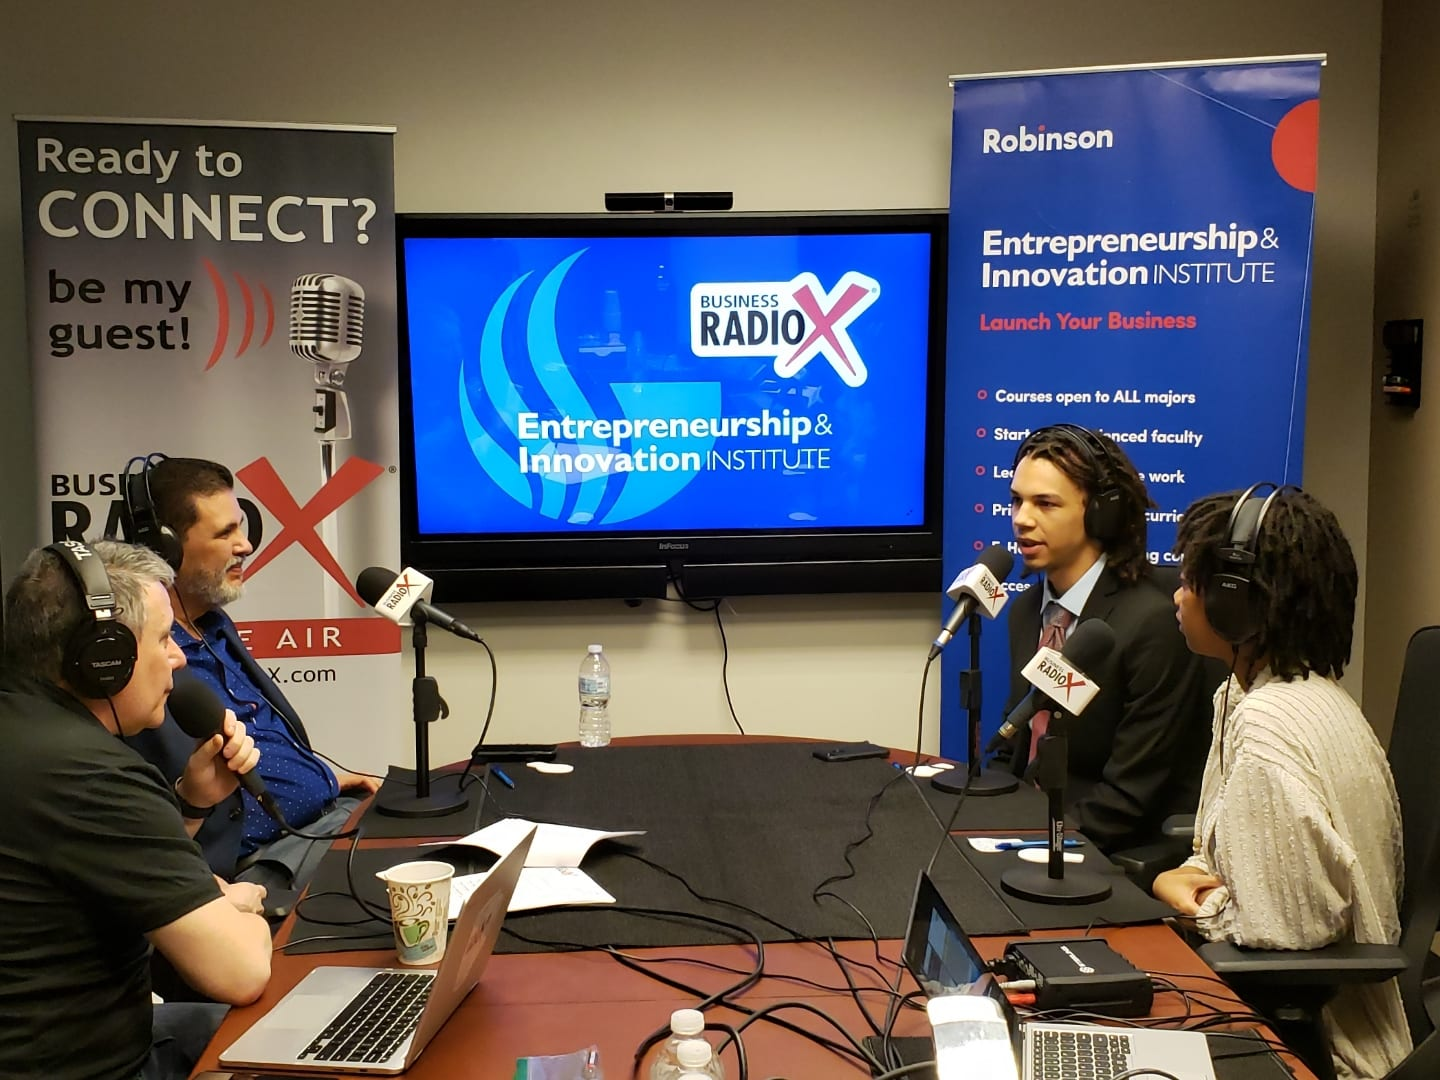 Business RadioX at GSU interviews on site.